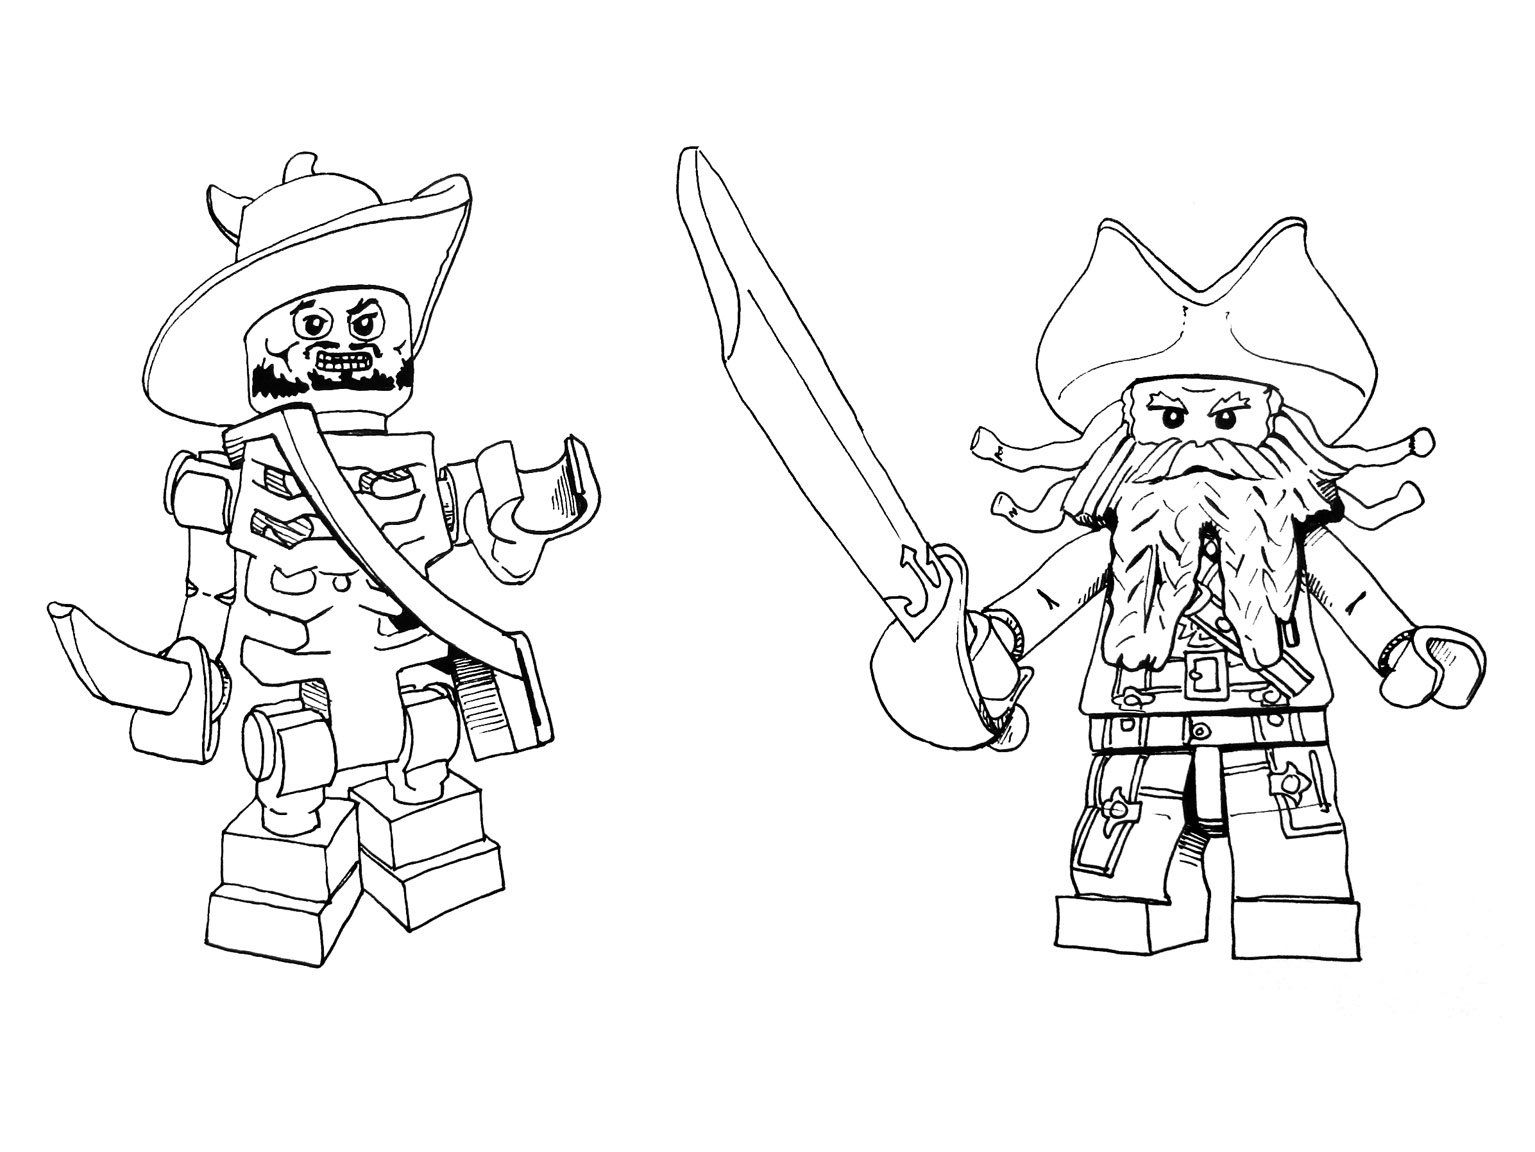 Pirate colouring pages to print - Lego Pirate Coloring Page